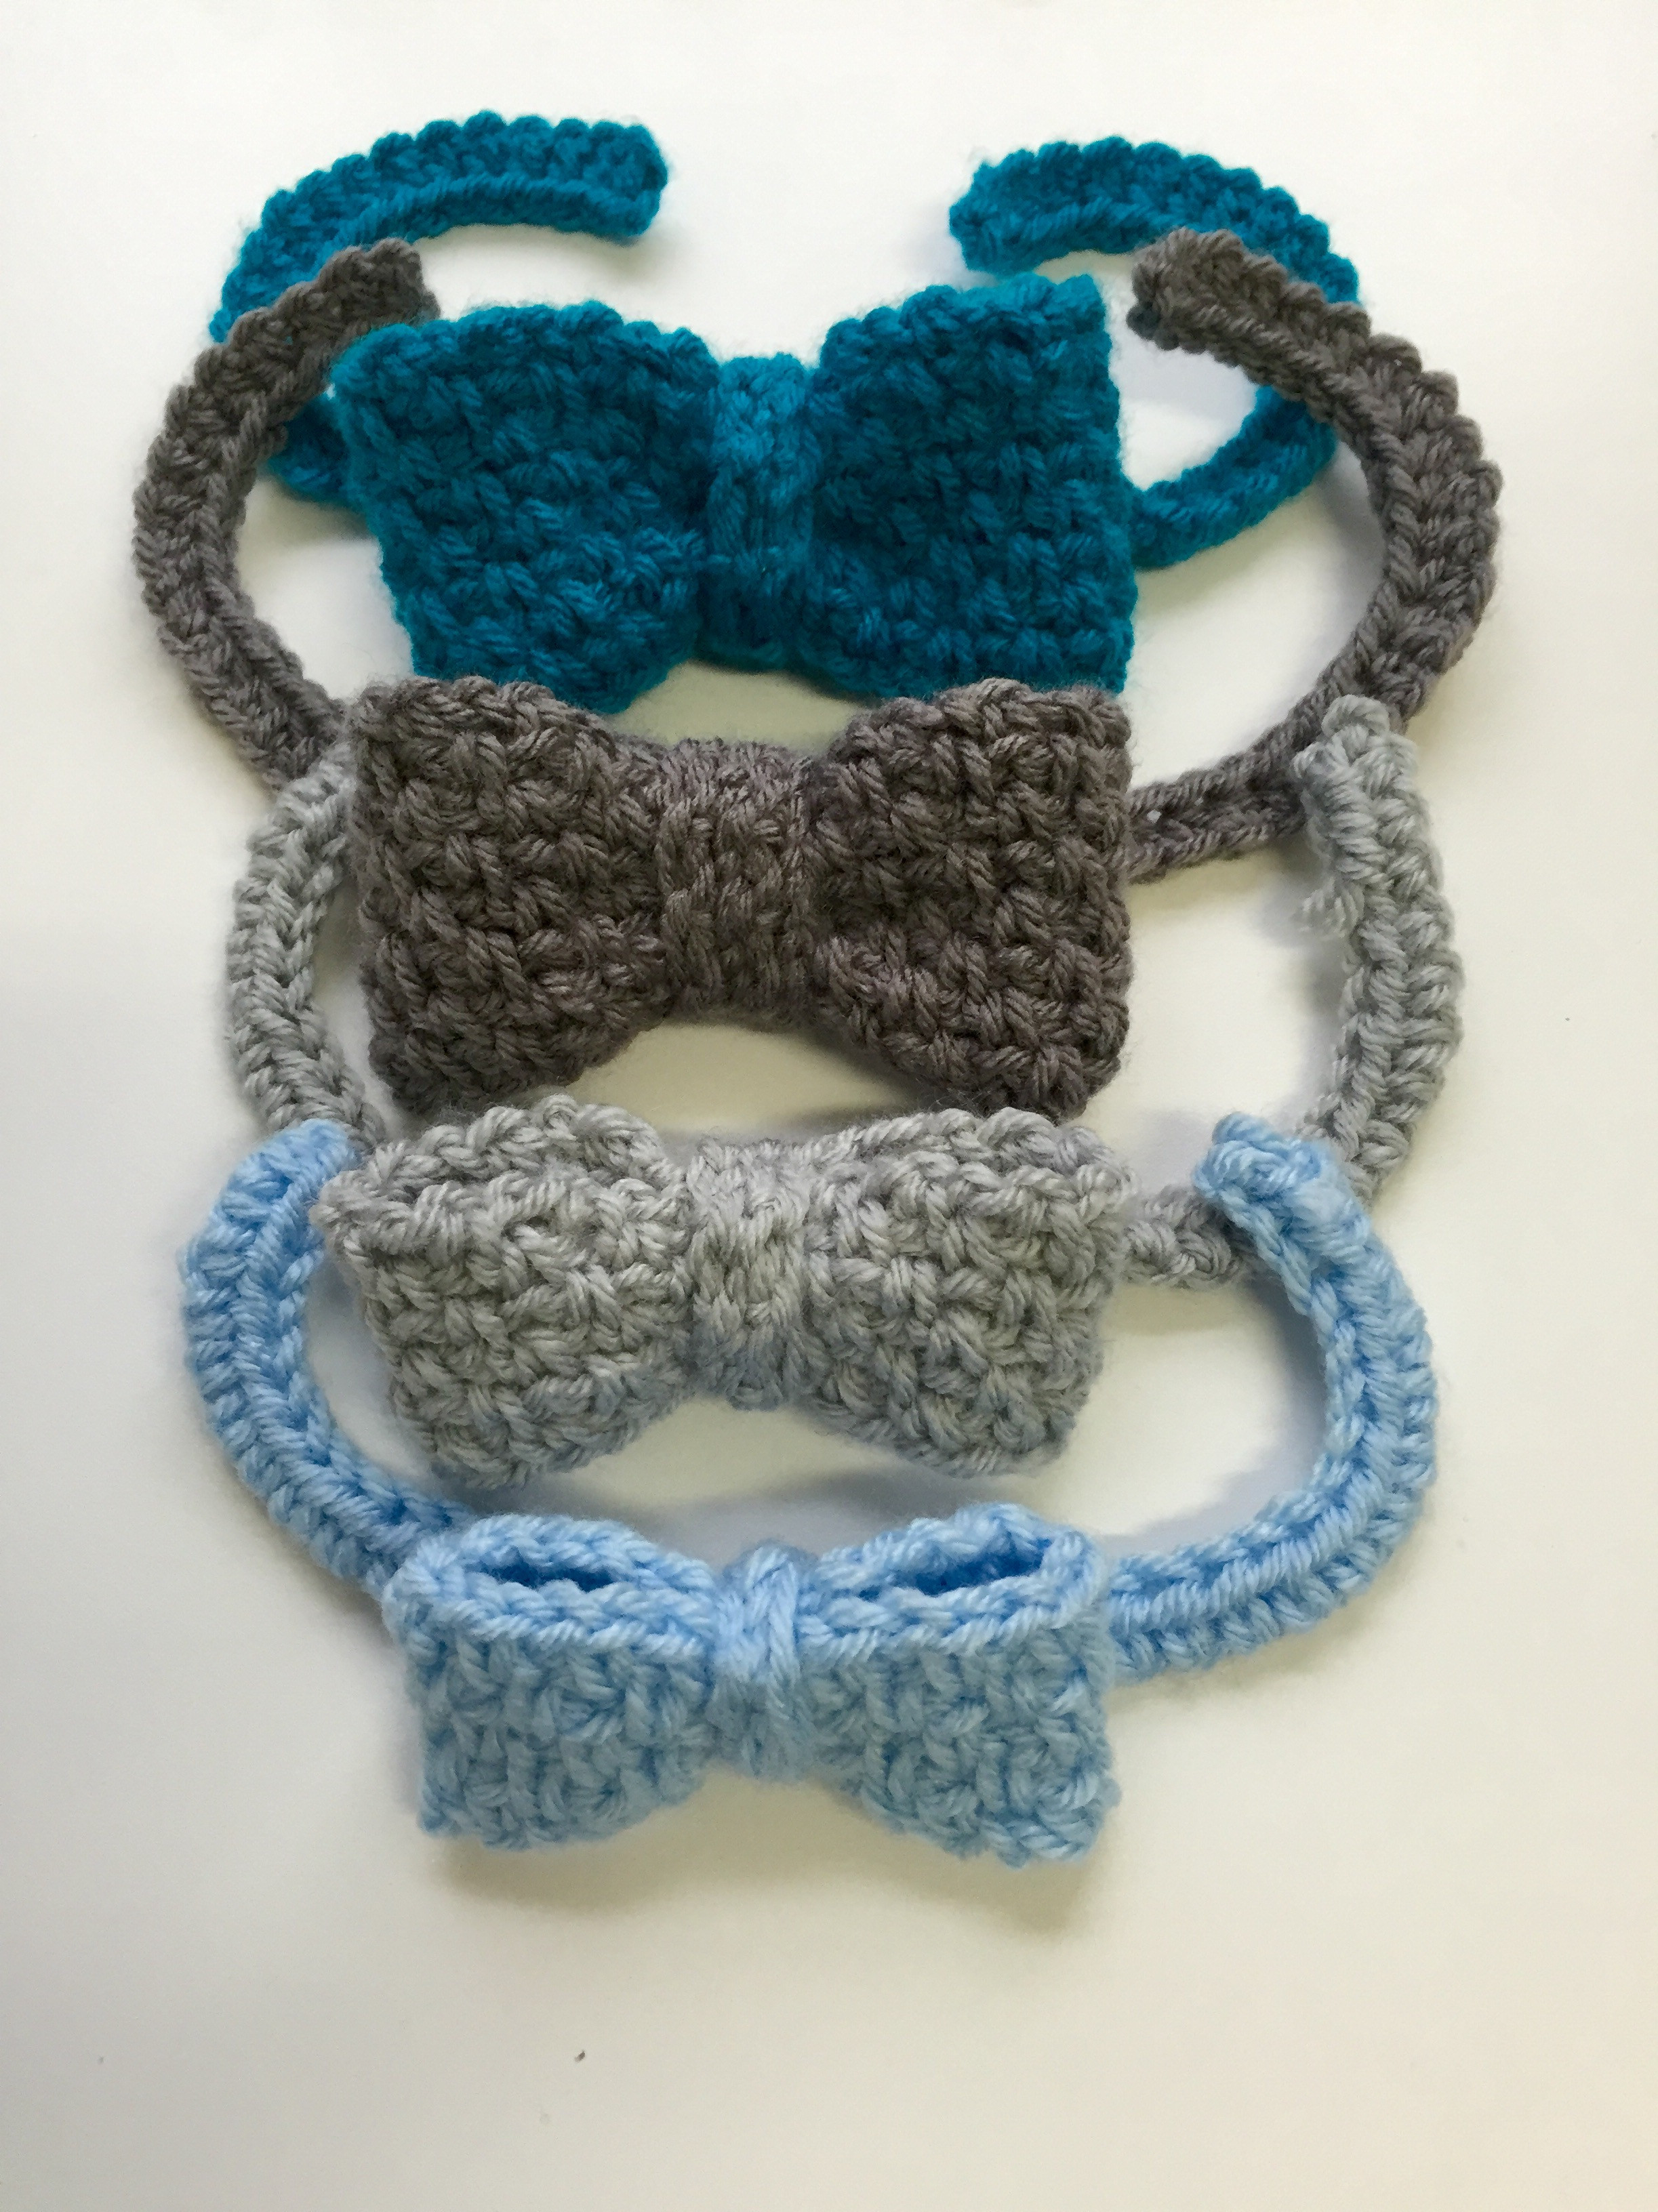 Crochet Bow Tie Awesome Crochet Pattern Woven Dressy Bow Tie for Babies Boys Of Brilliant 40 Pics Crochet Bow Tie